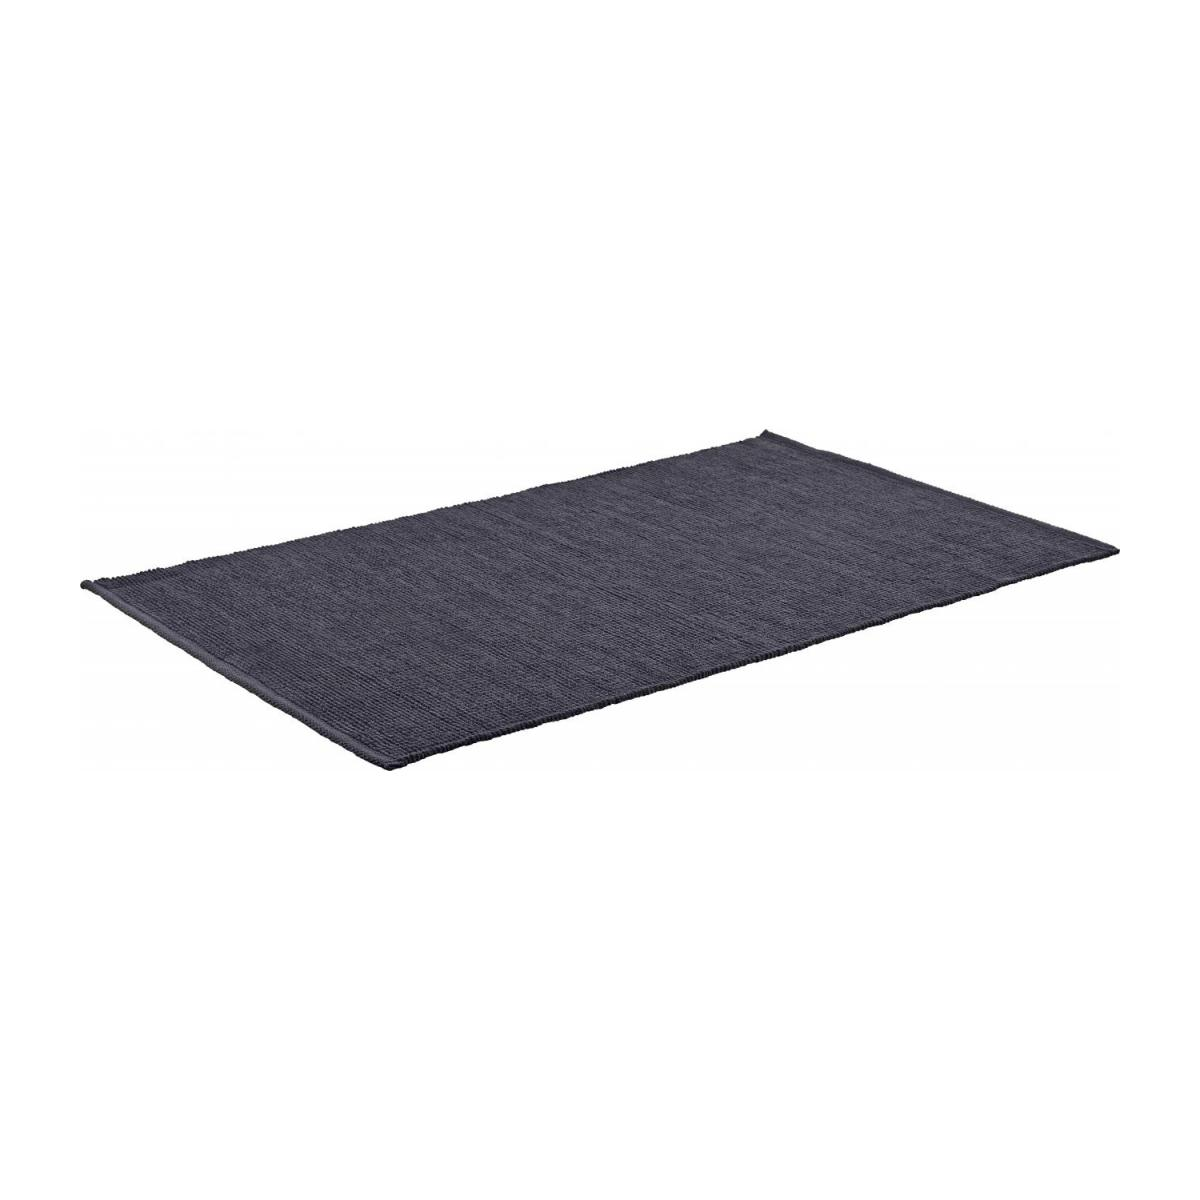 Small textured cotton rug n°2